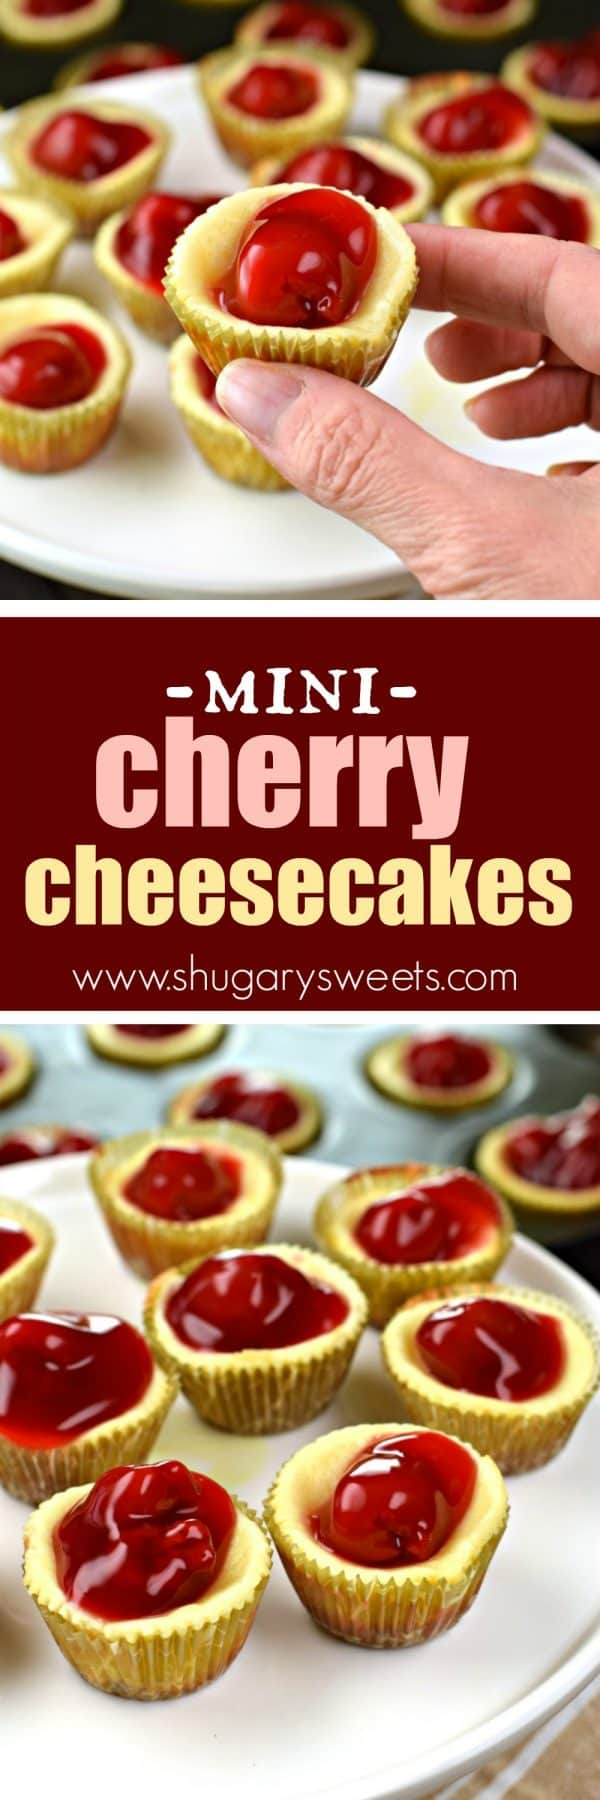 These Mini Cherry Cheesecakes show up at all holidays in our family. Just like an original cheesecake, these bite sized treats are packed with creamy flavor! #cheesecake #holiday #cherrycheesecake